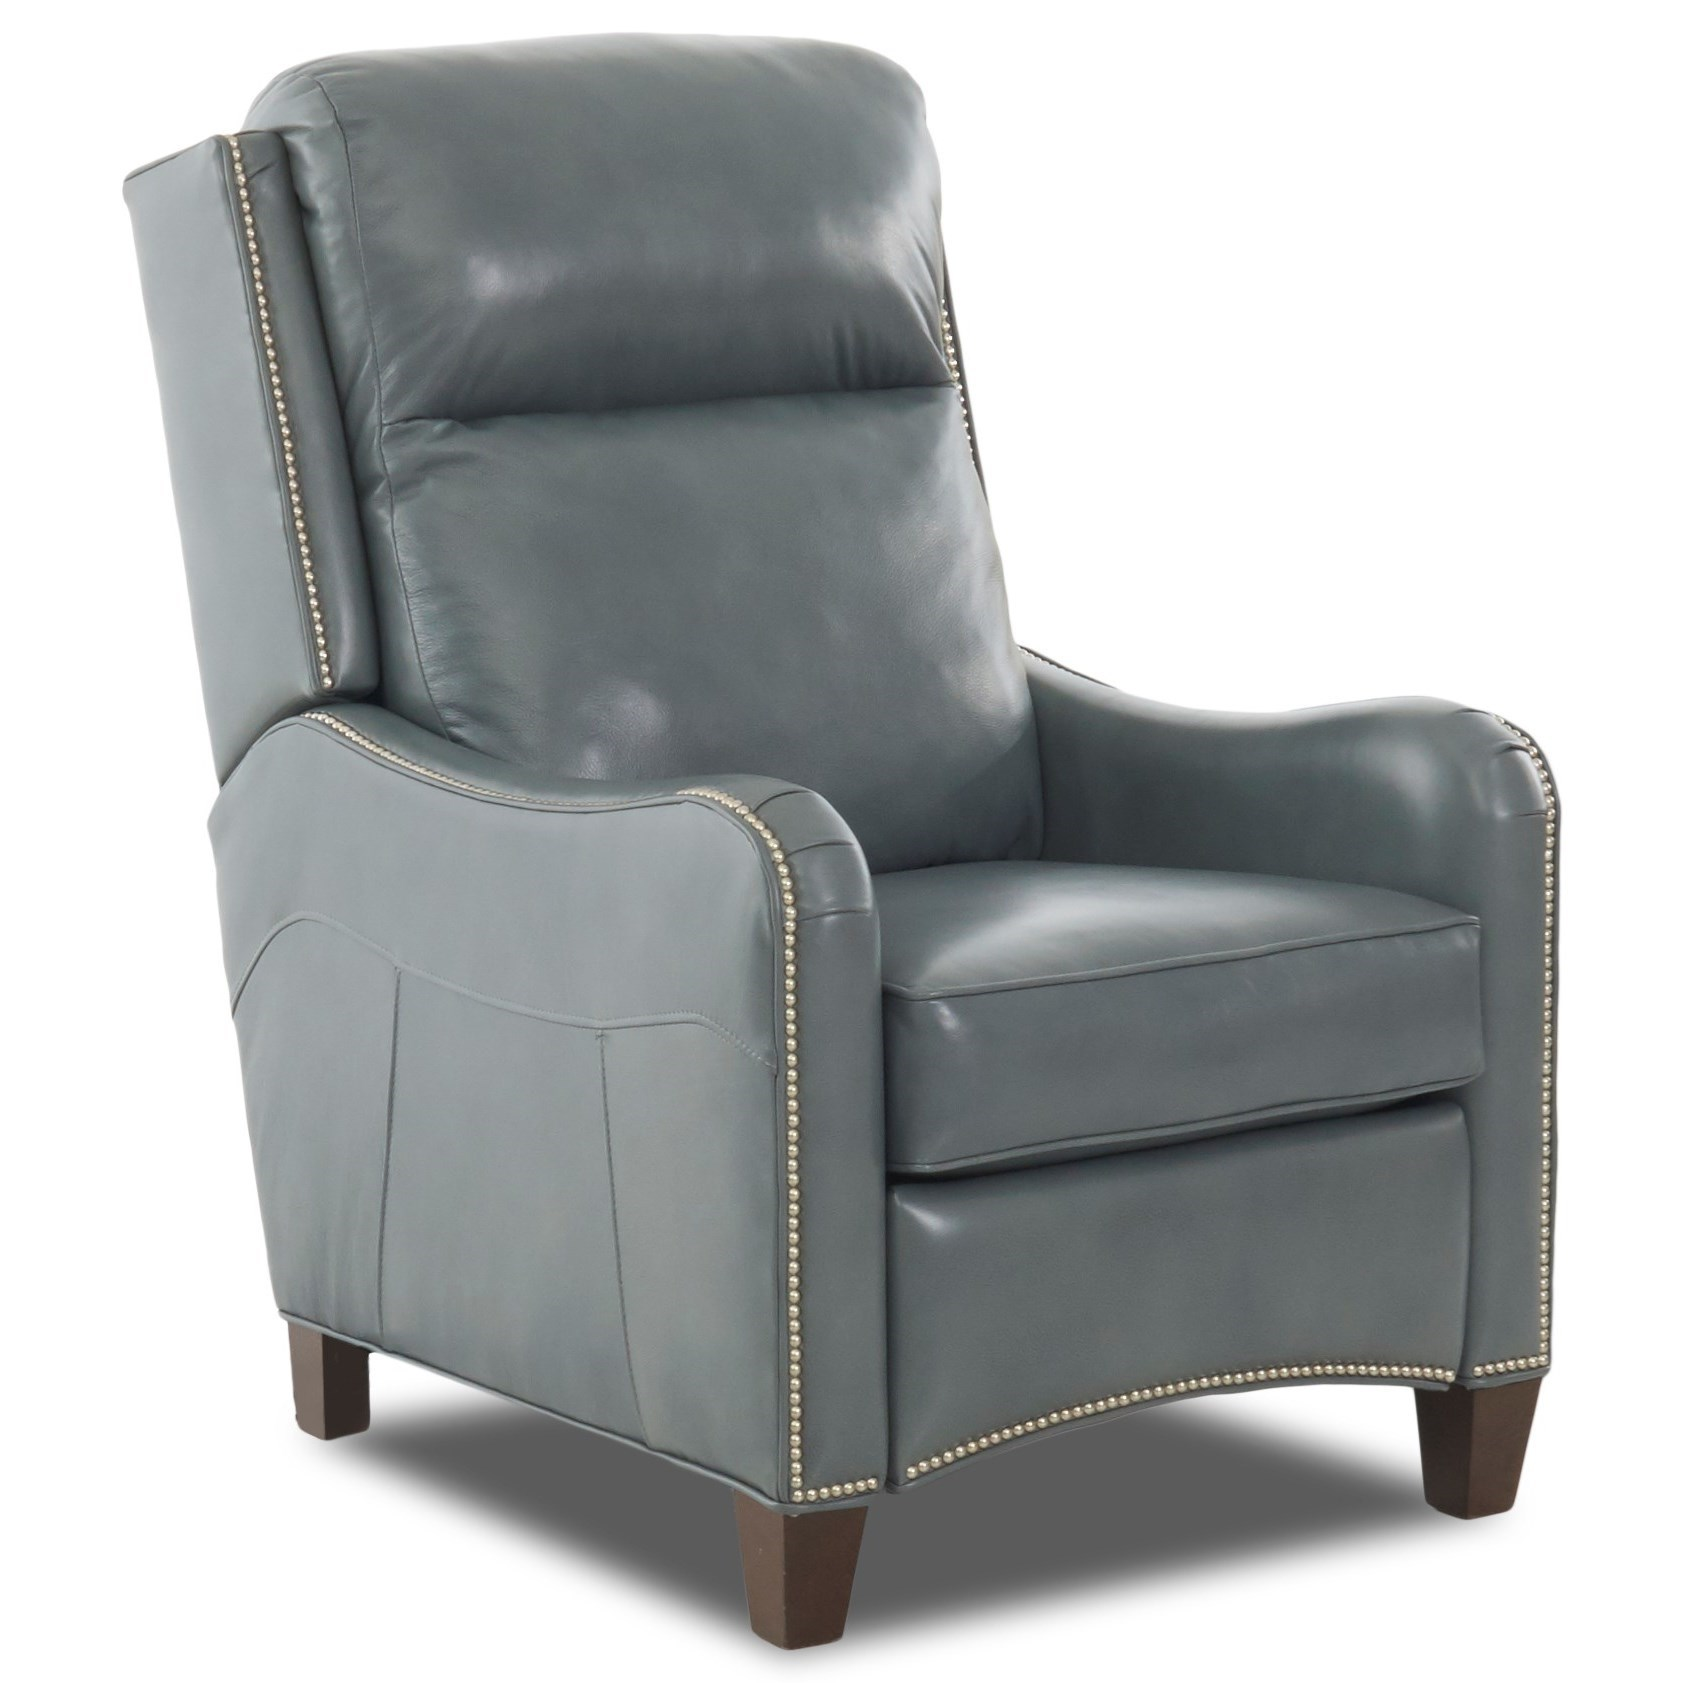 Transitional Push Back Recliner with Nailheads